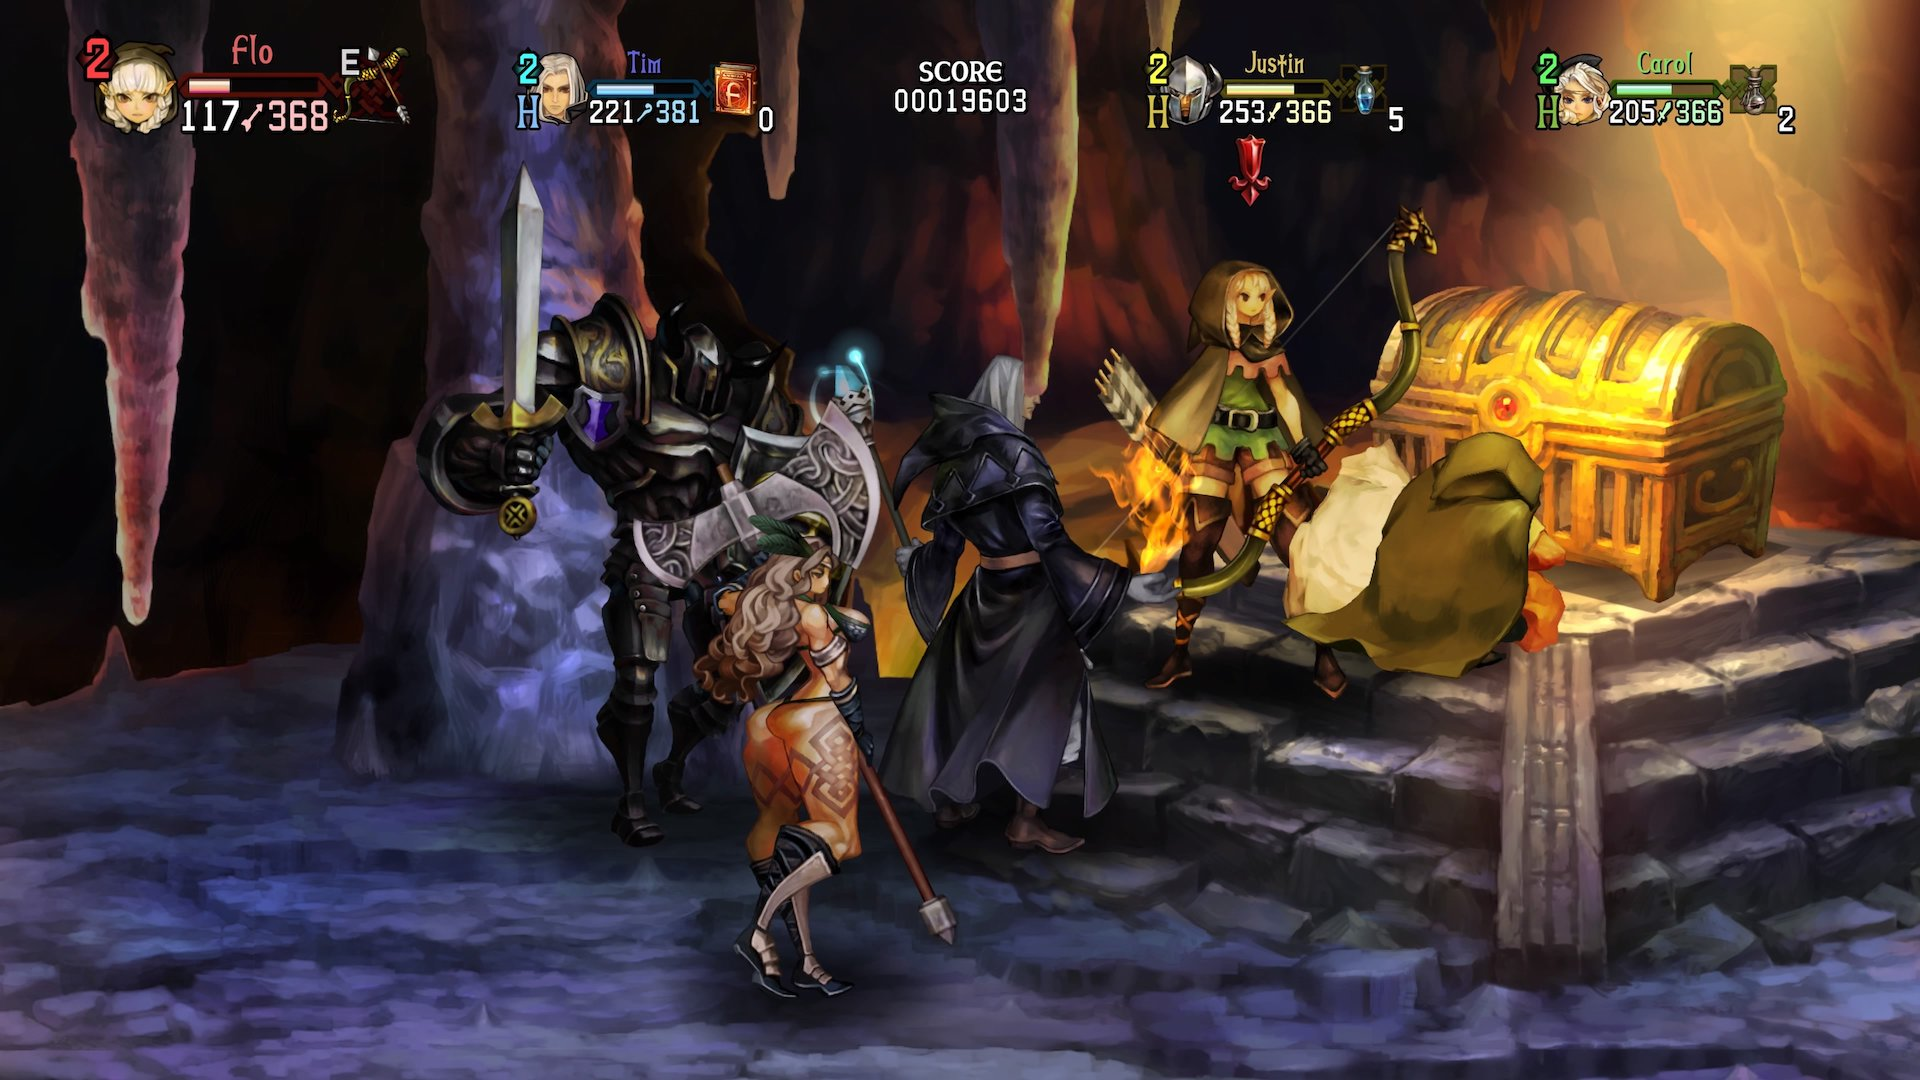 Today's Best Game Deals: Dragon's Crown Pro $20, Resident Evil Collection $30, more